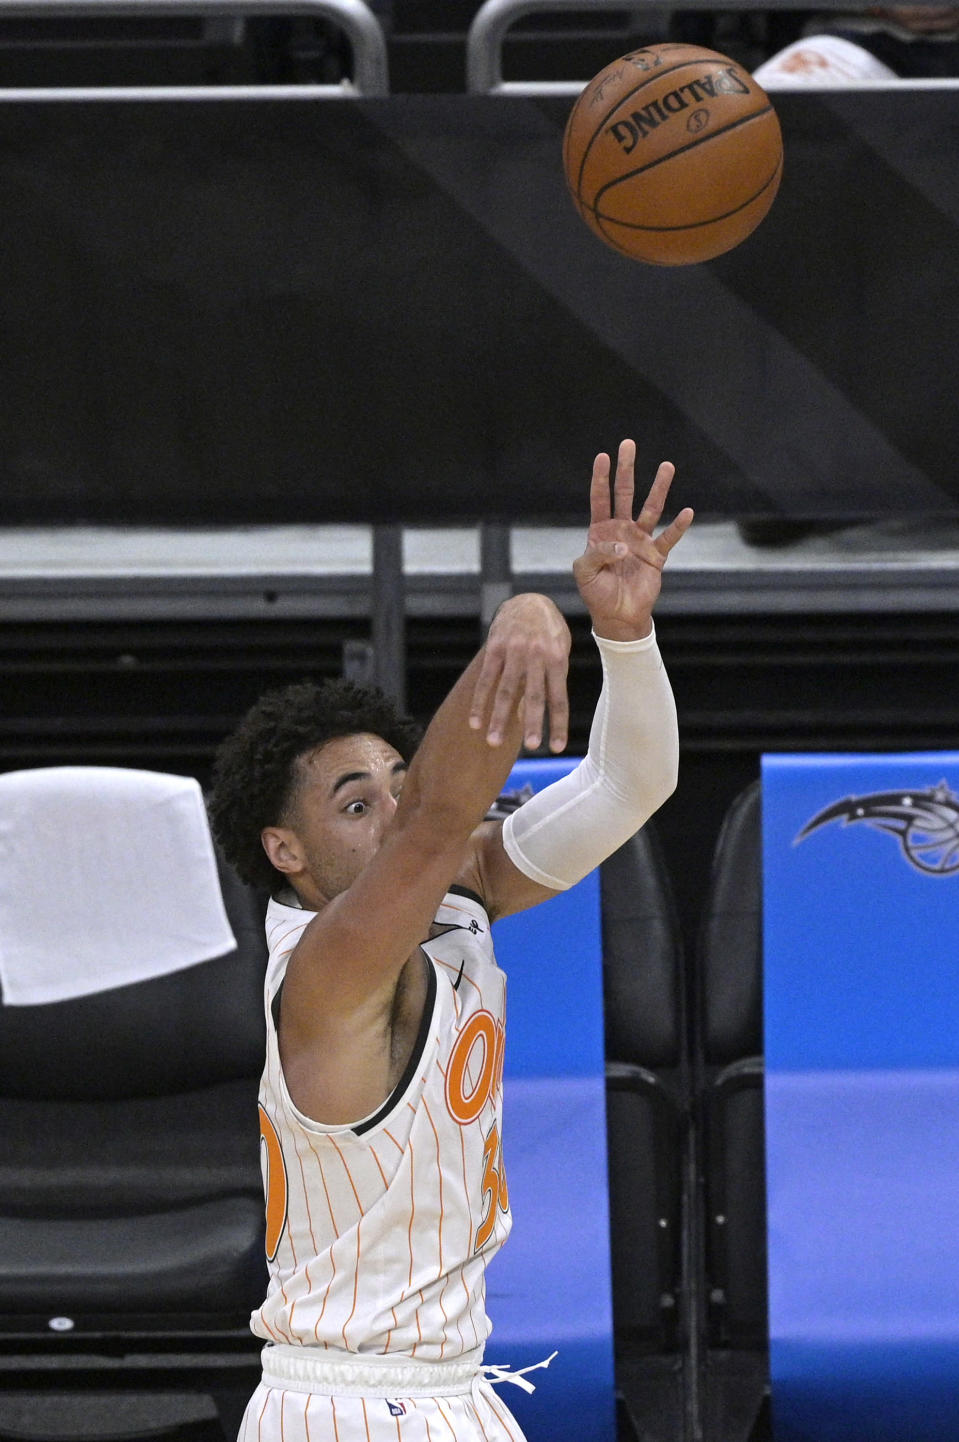 Orlando Magic guard Devin Cannady attempts a 3-point shot during the second half of the team's NBA basketball game against the New Orleans Pelicans, Thursday, April 22, 2021, in Orlando, Fla. (AP Photo/Phelan M. Ebenhack)